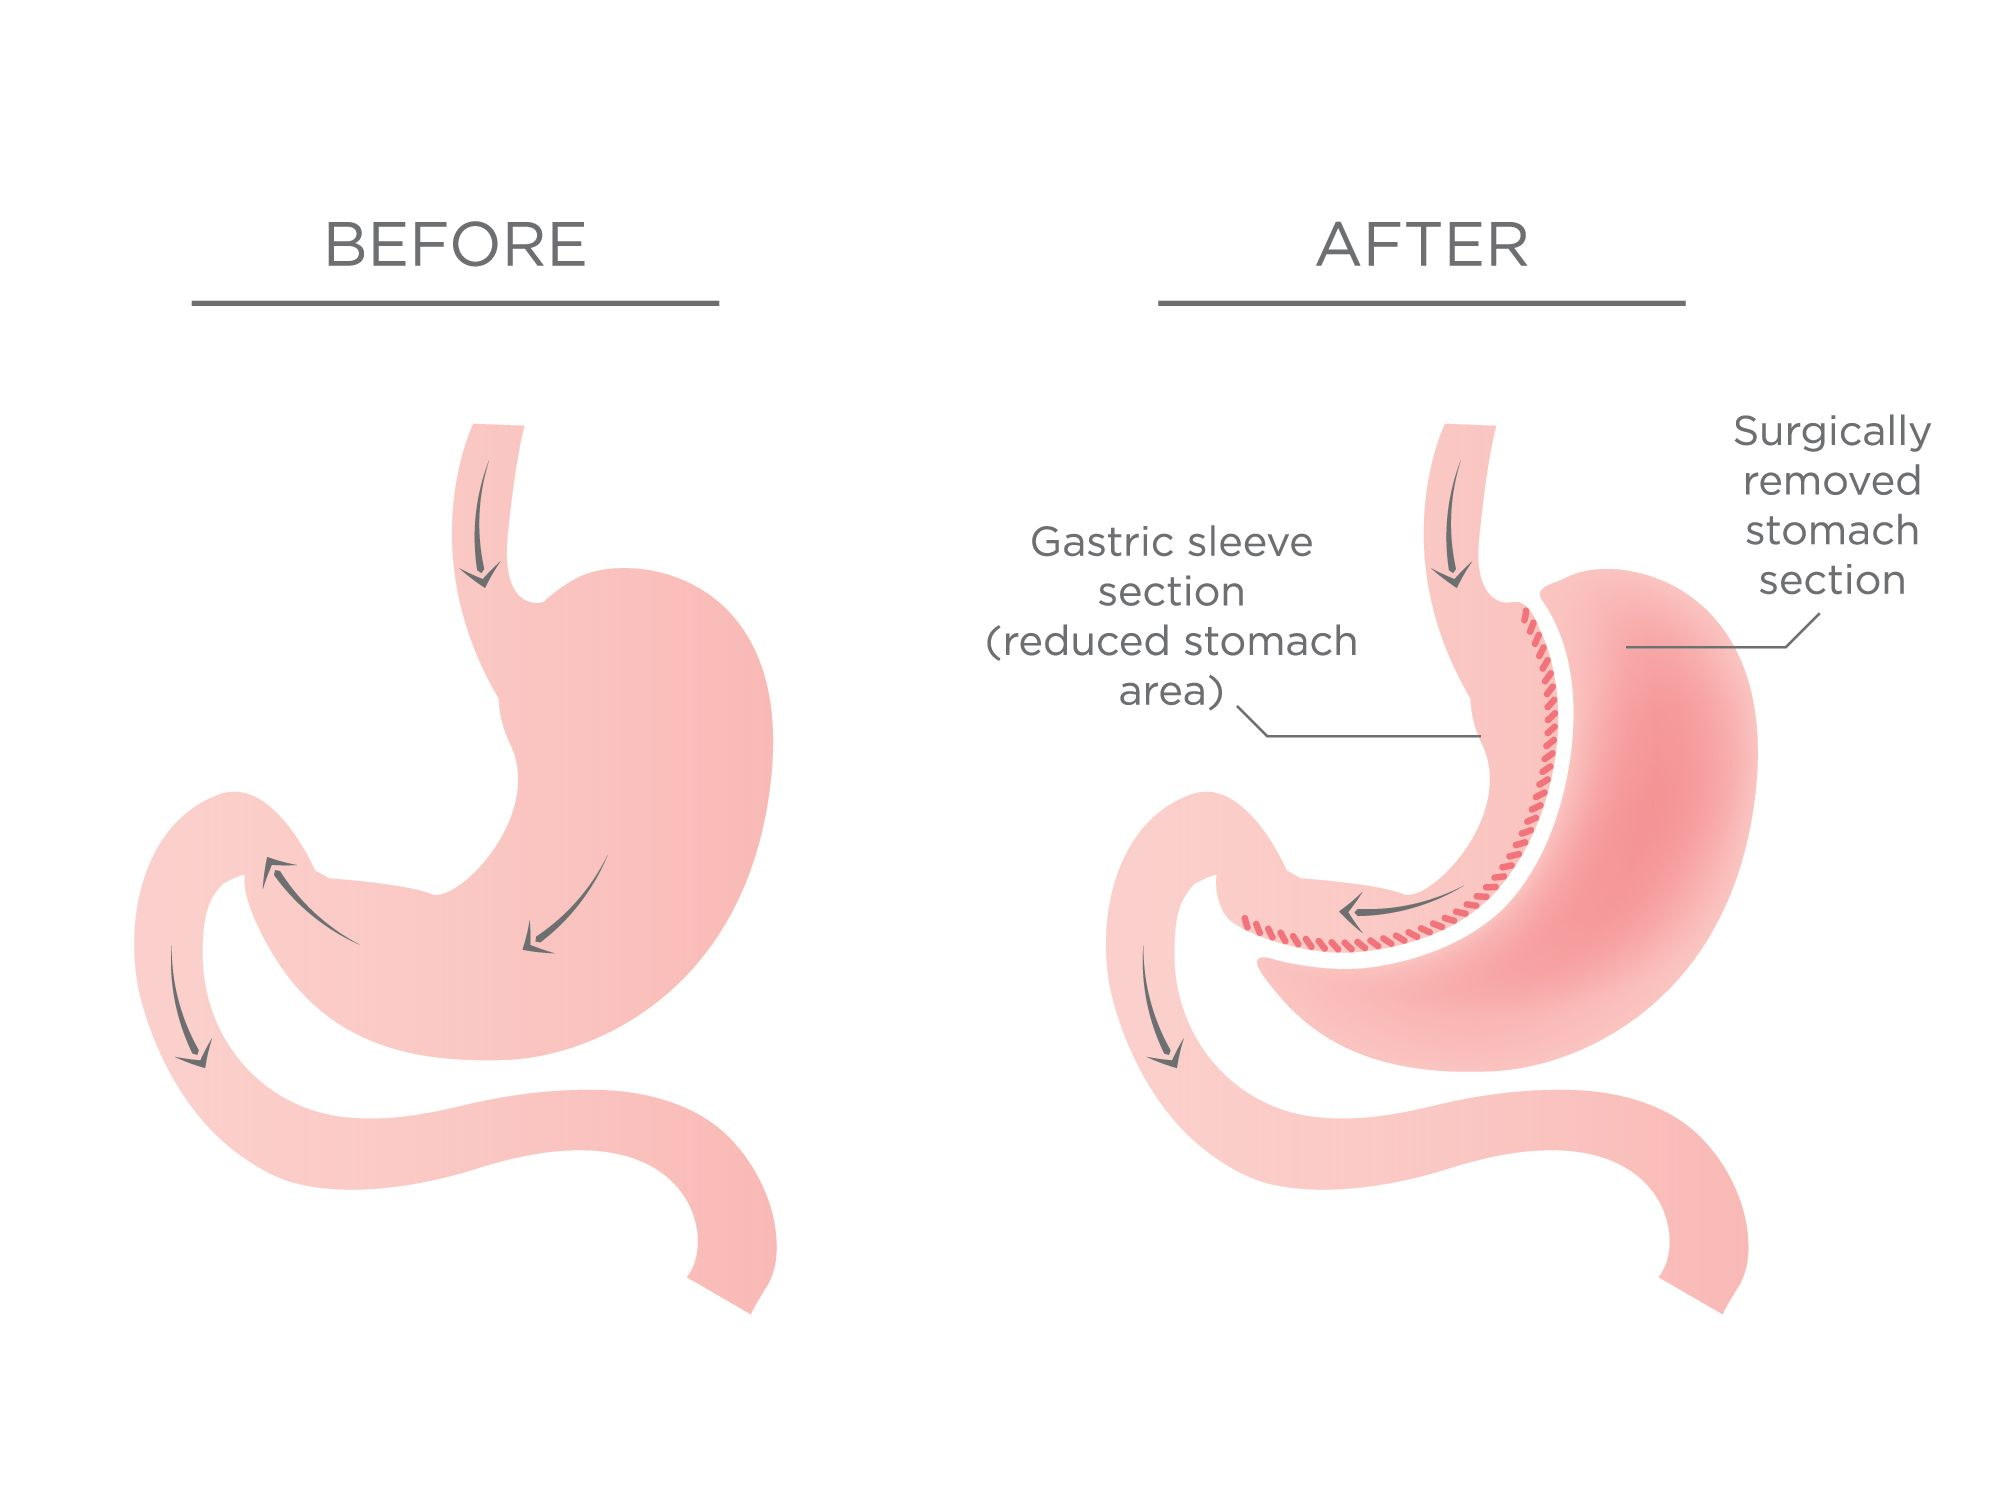 Stomach before and after sleeve gastrectomy surgery